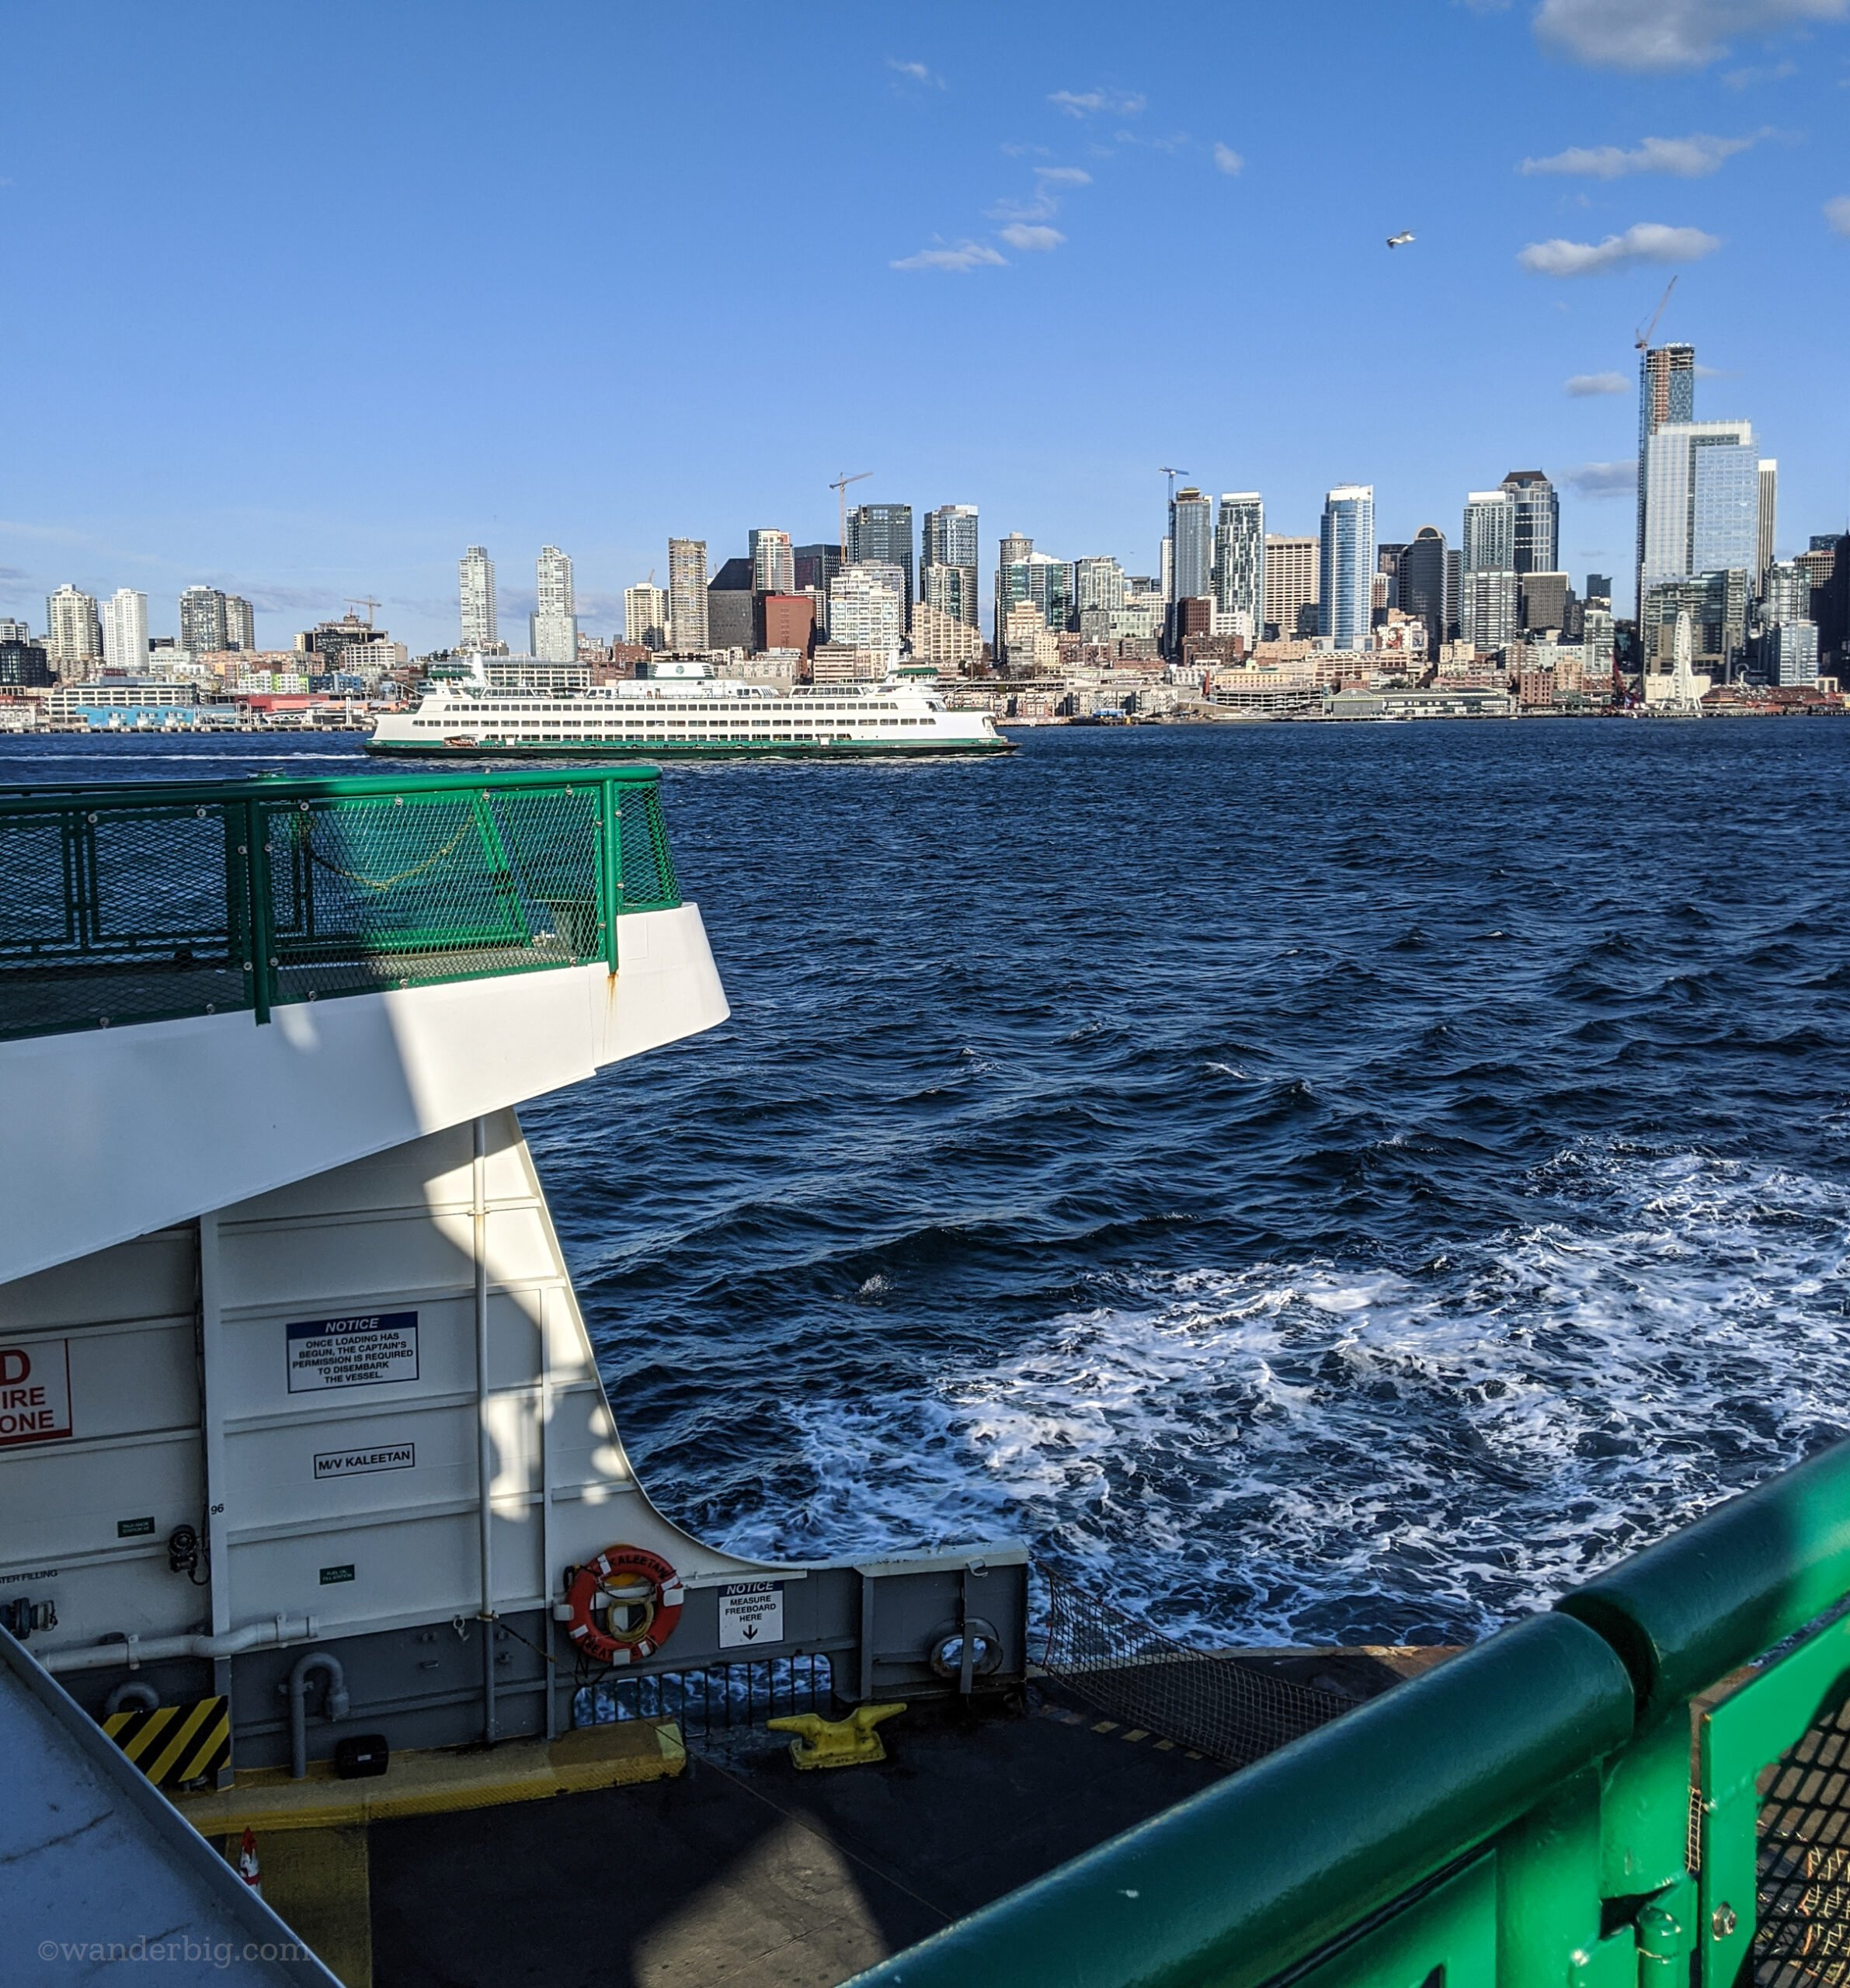 The seattle skyline as seen from an approach on the bainbridge to seattle ferry. Ferries are one way to navigate seattle without a car.